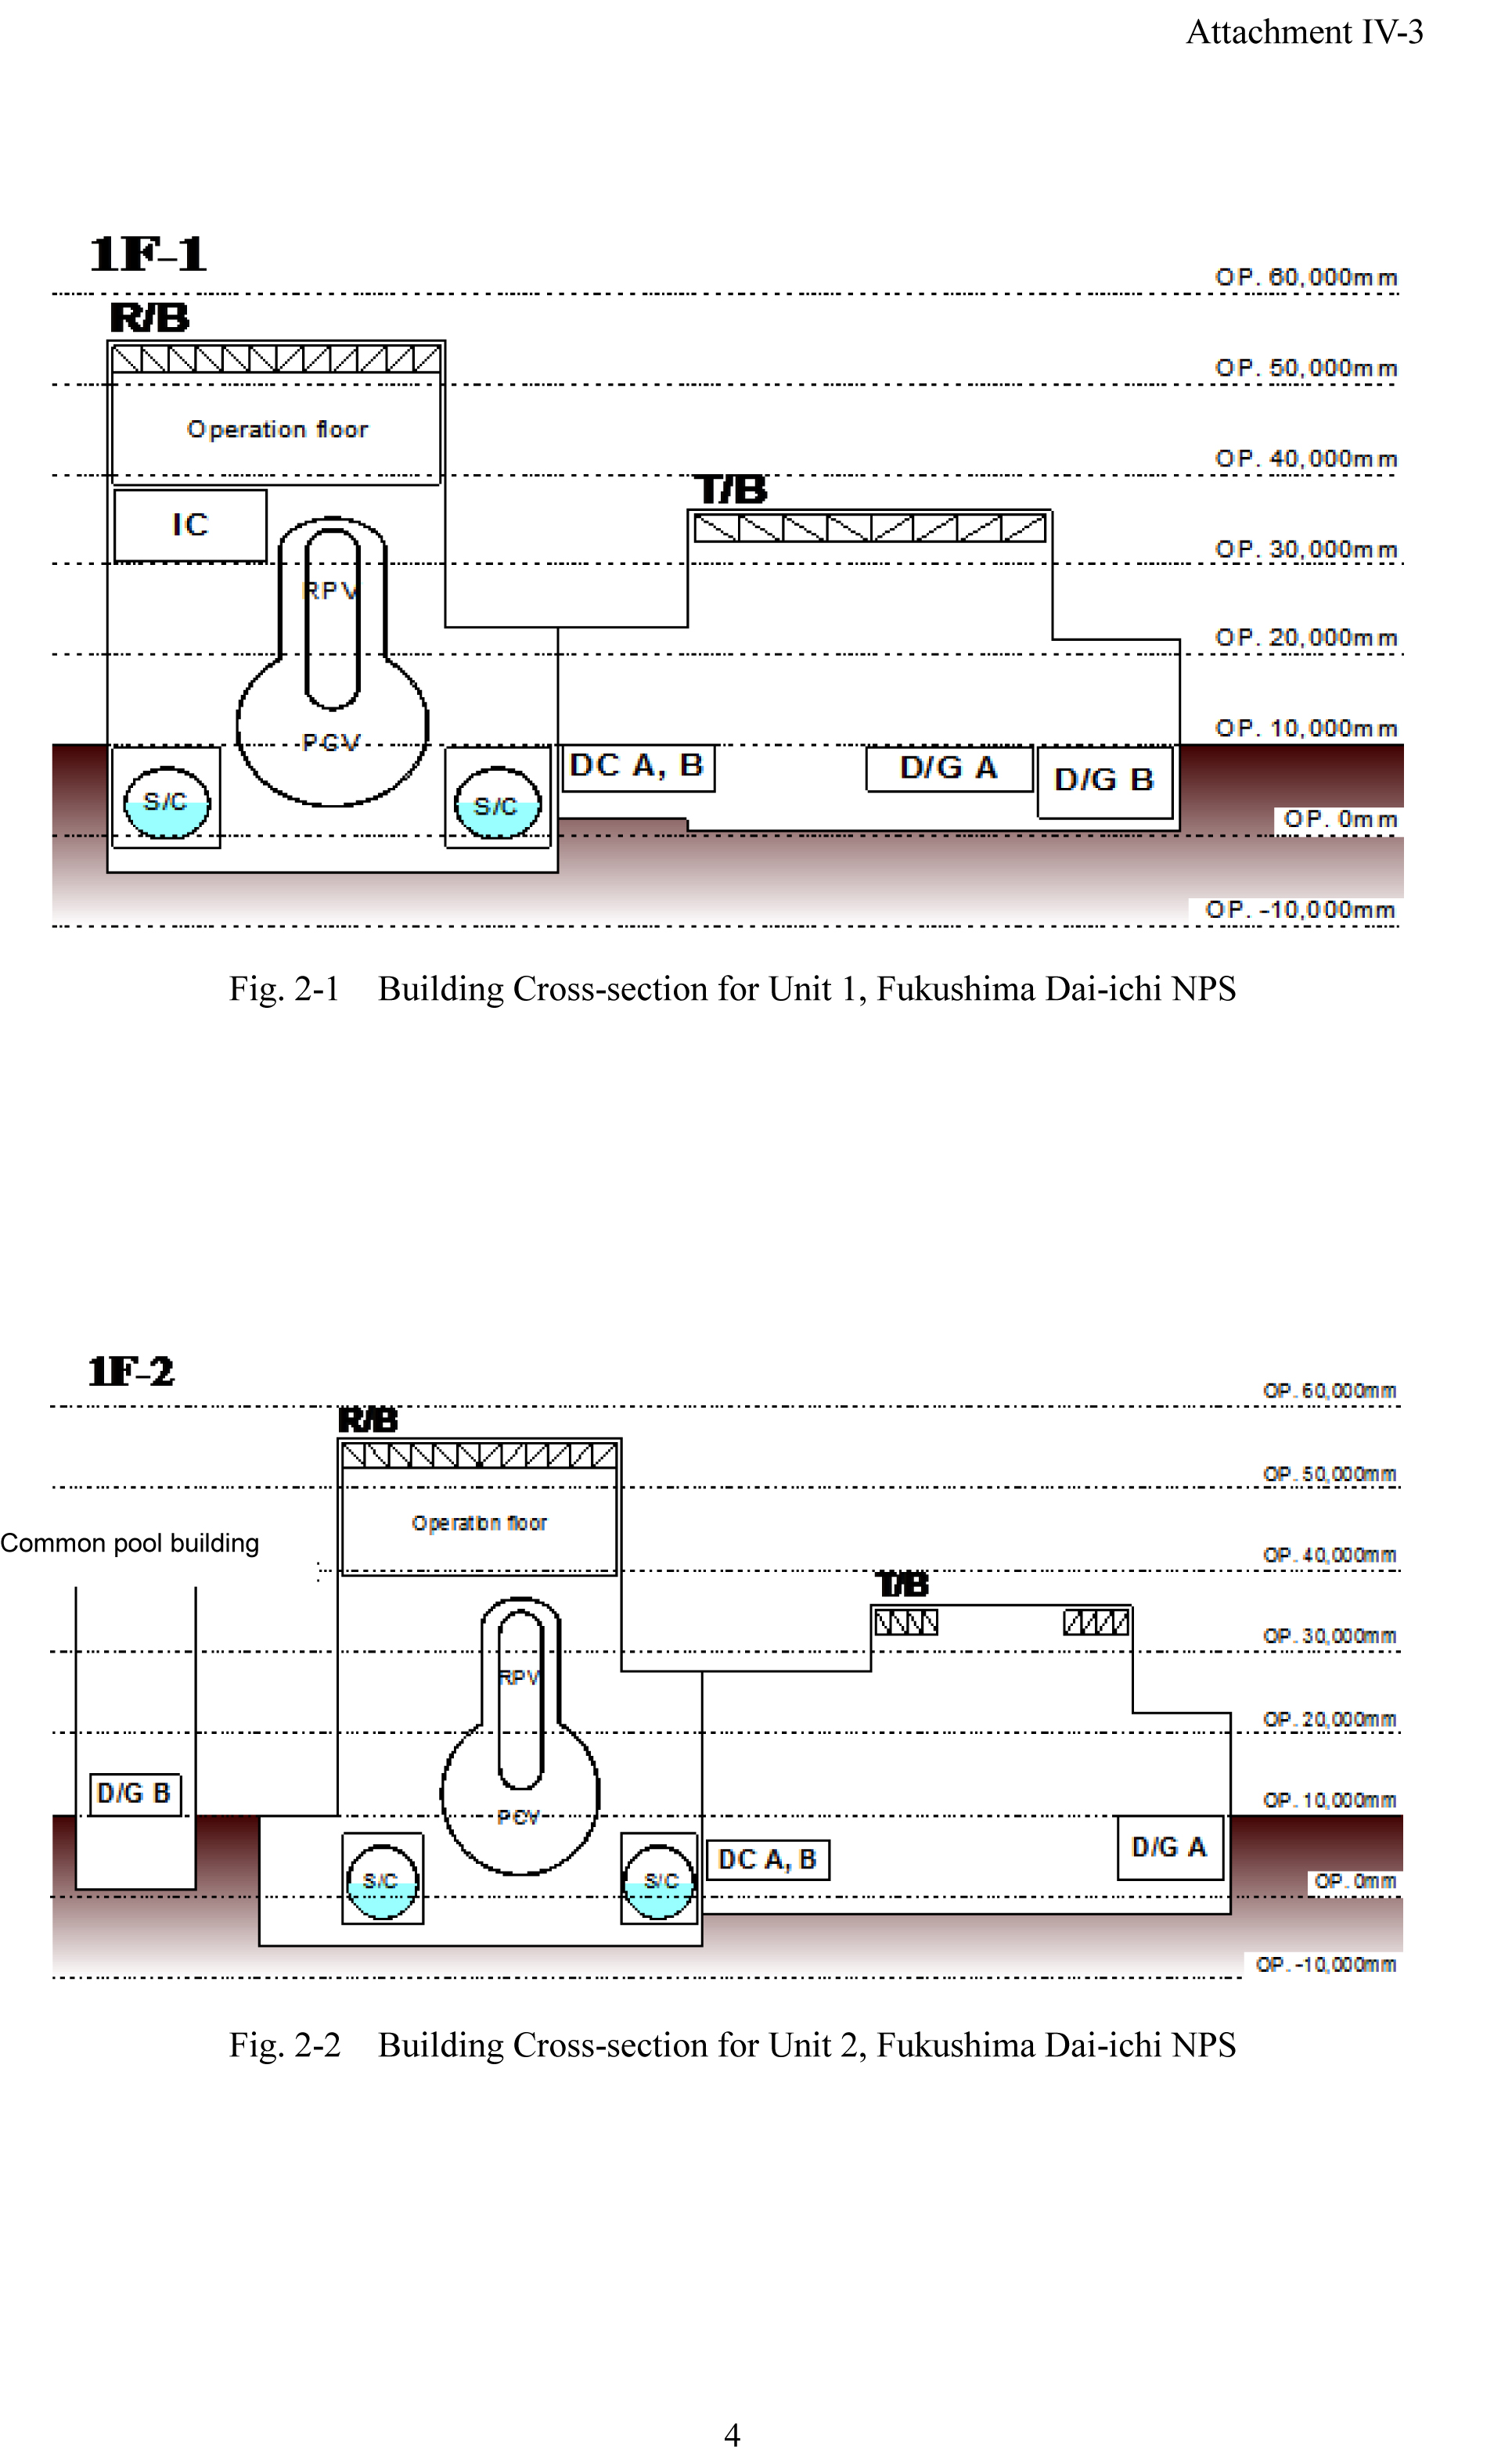 reactor building layout and reactor designs